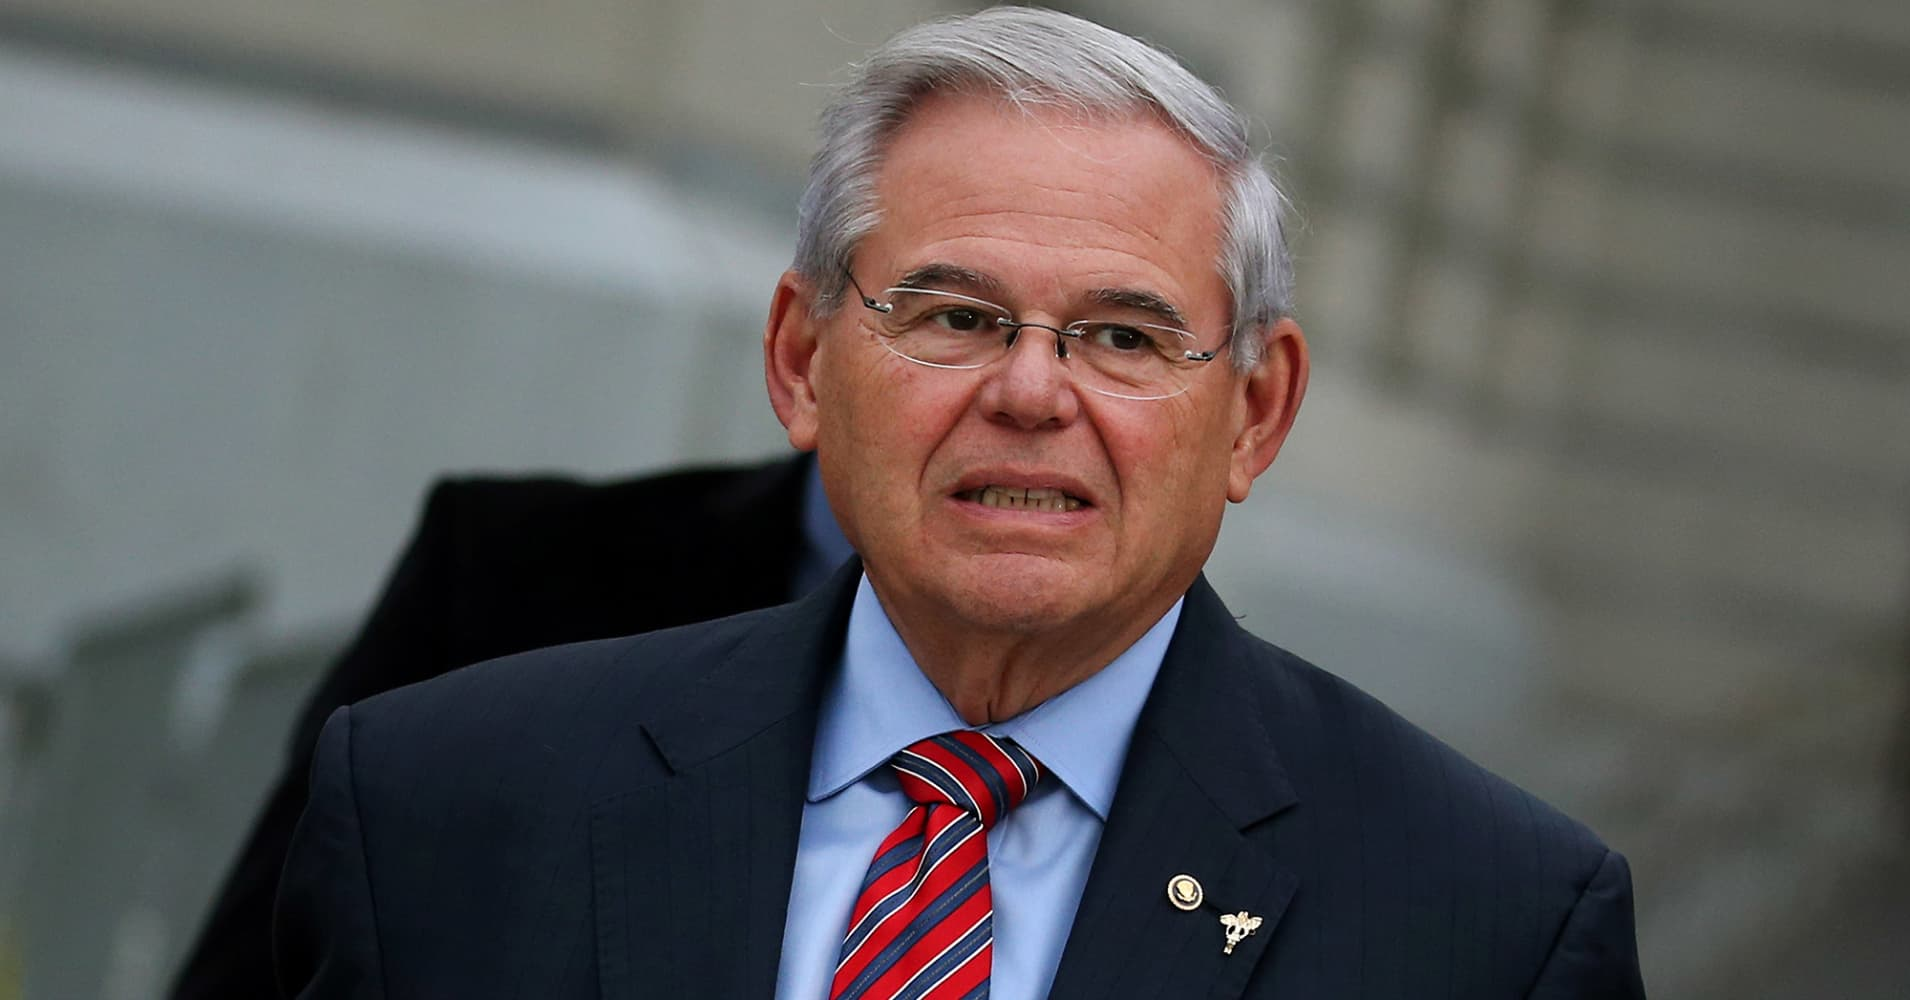 US to retry Senator Menendez on bribery, corruption charges